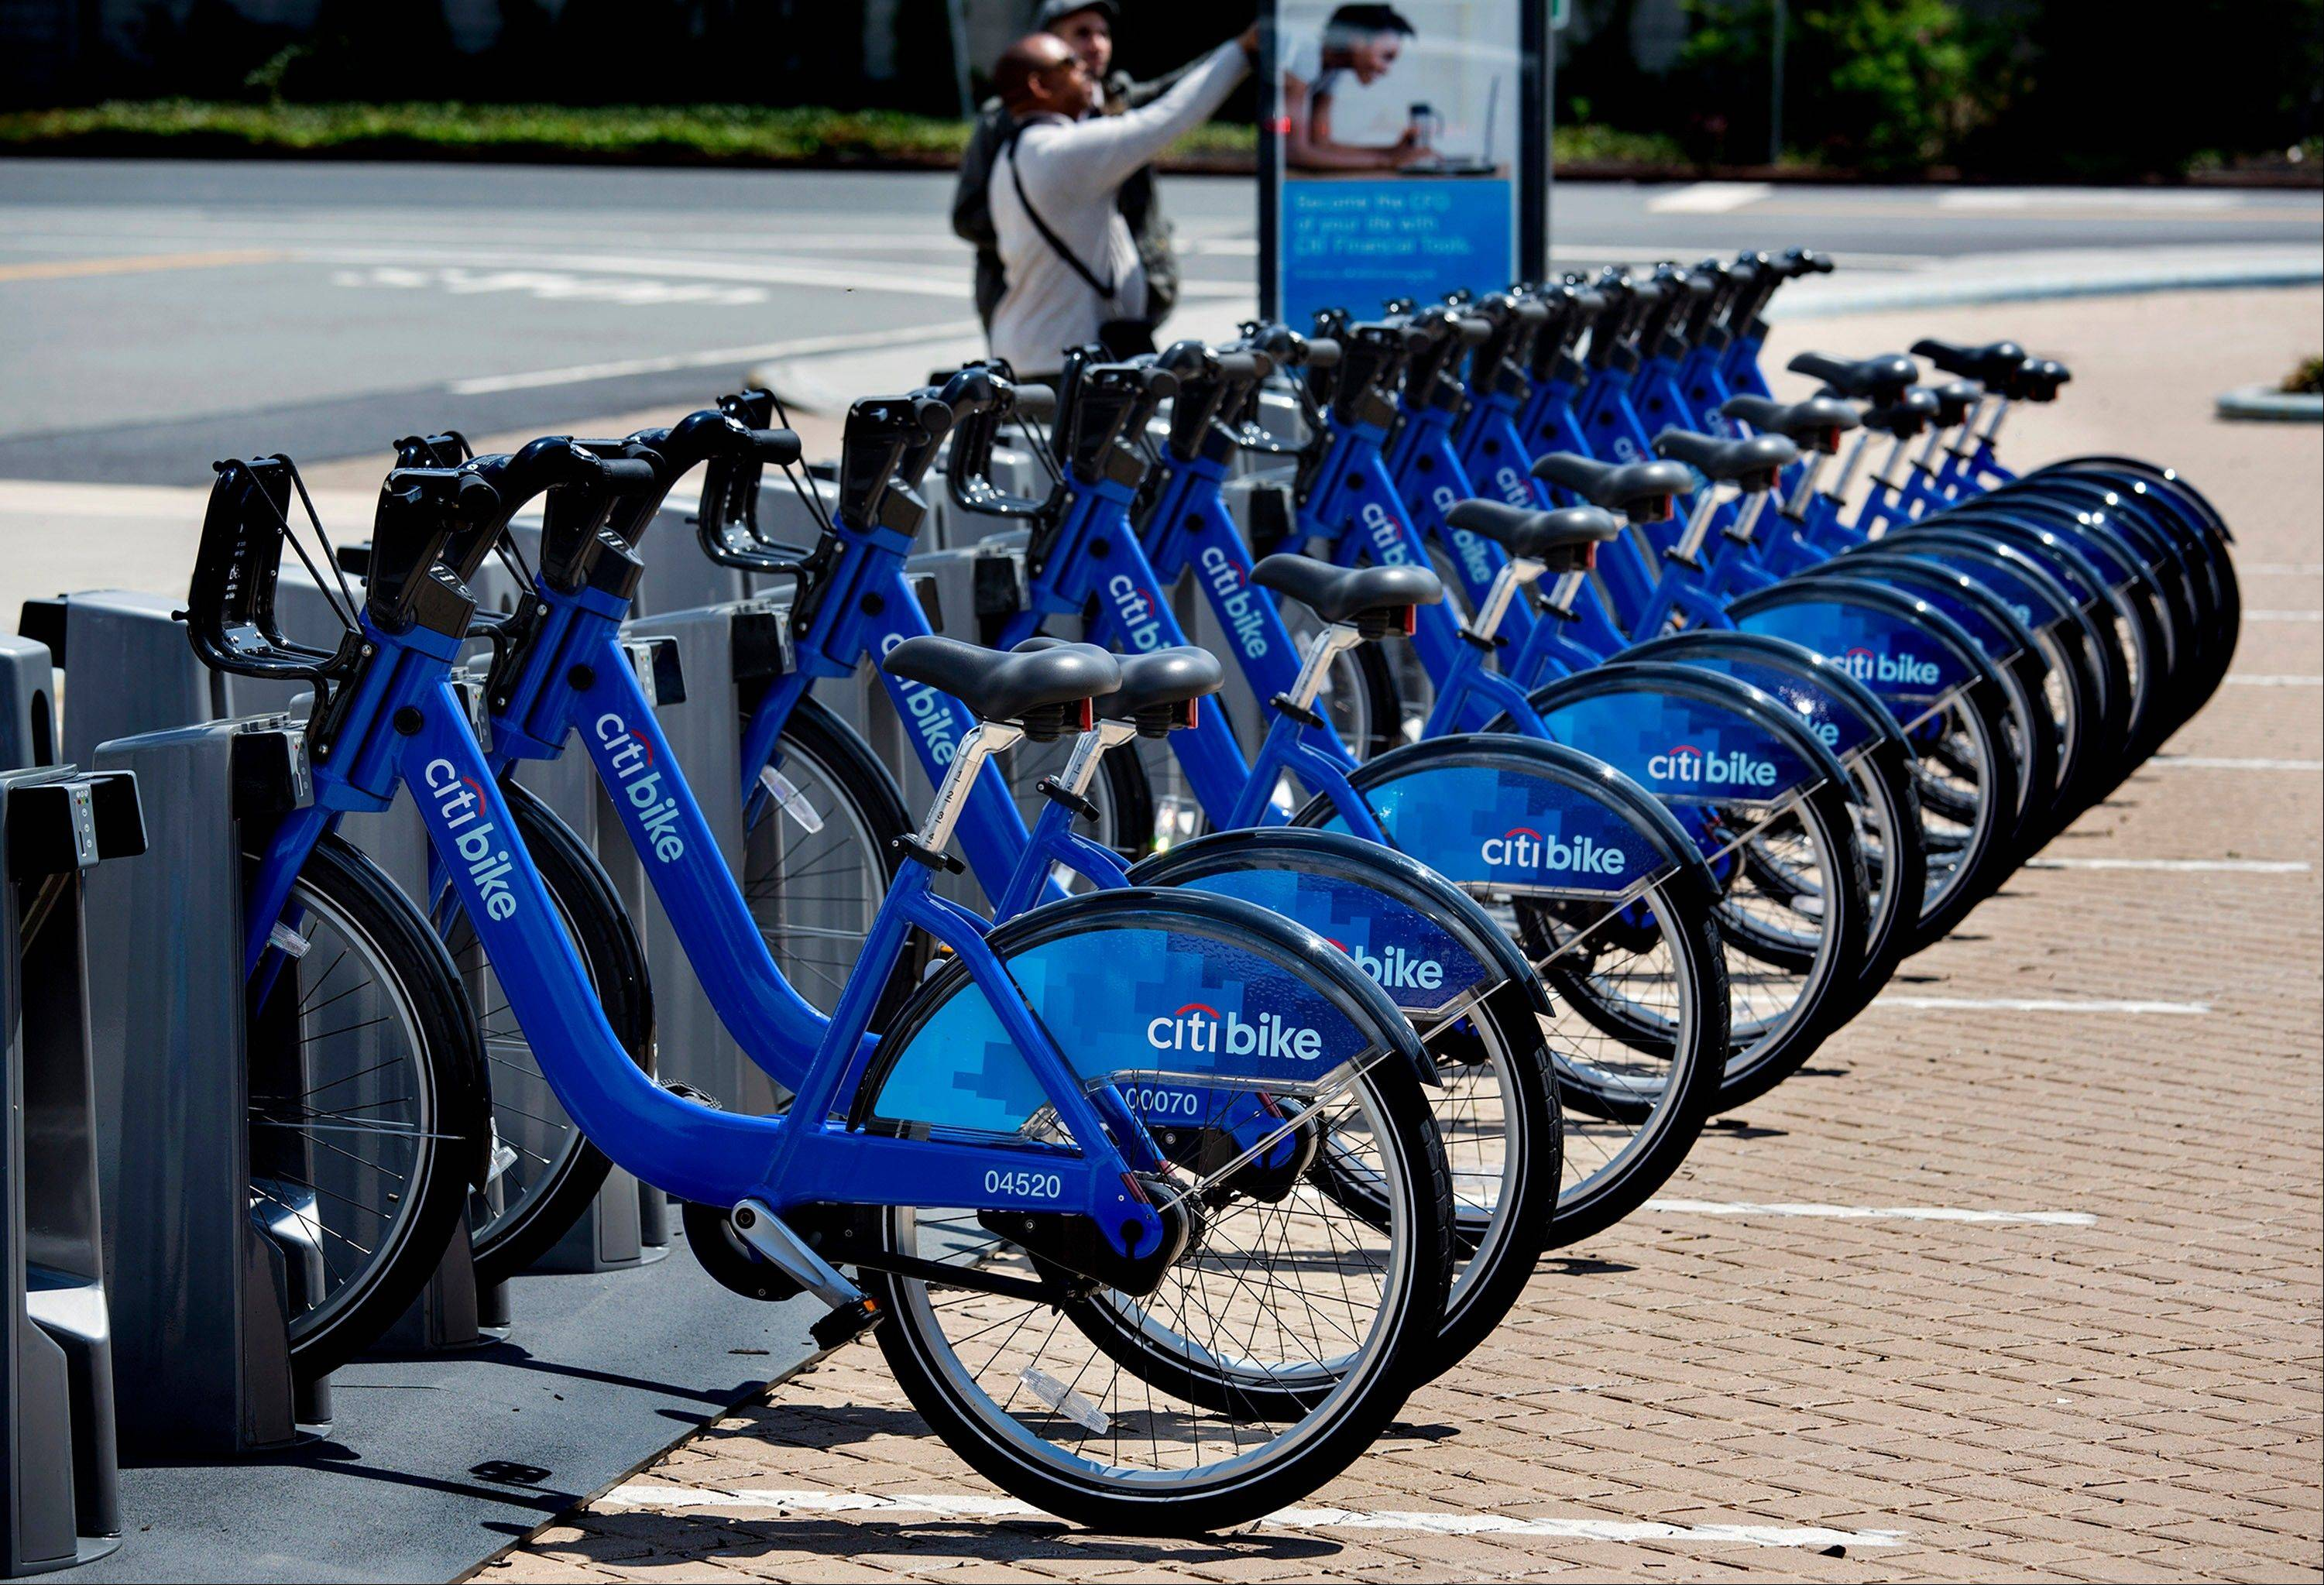 Bicycles that are part of the NYC Bike Share program are lined up at a dock and lock station at the Brooklyn Navy Yards in New York. Chicago launched its bike sharing programon June 28.